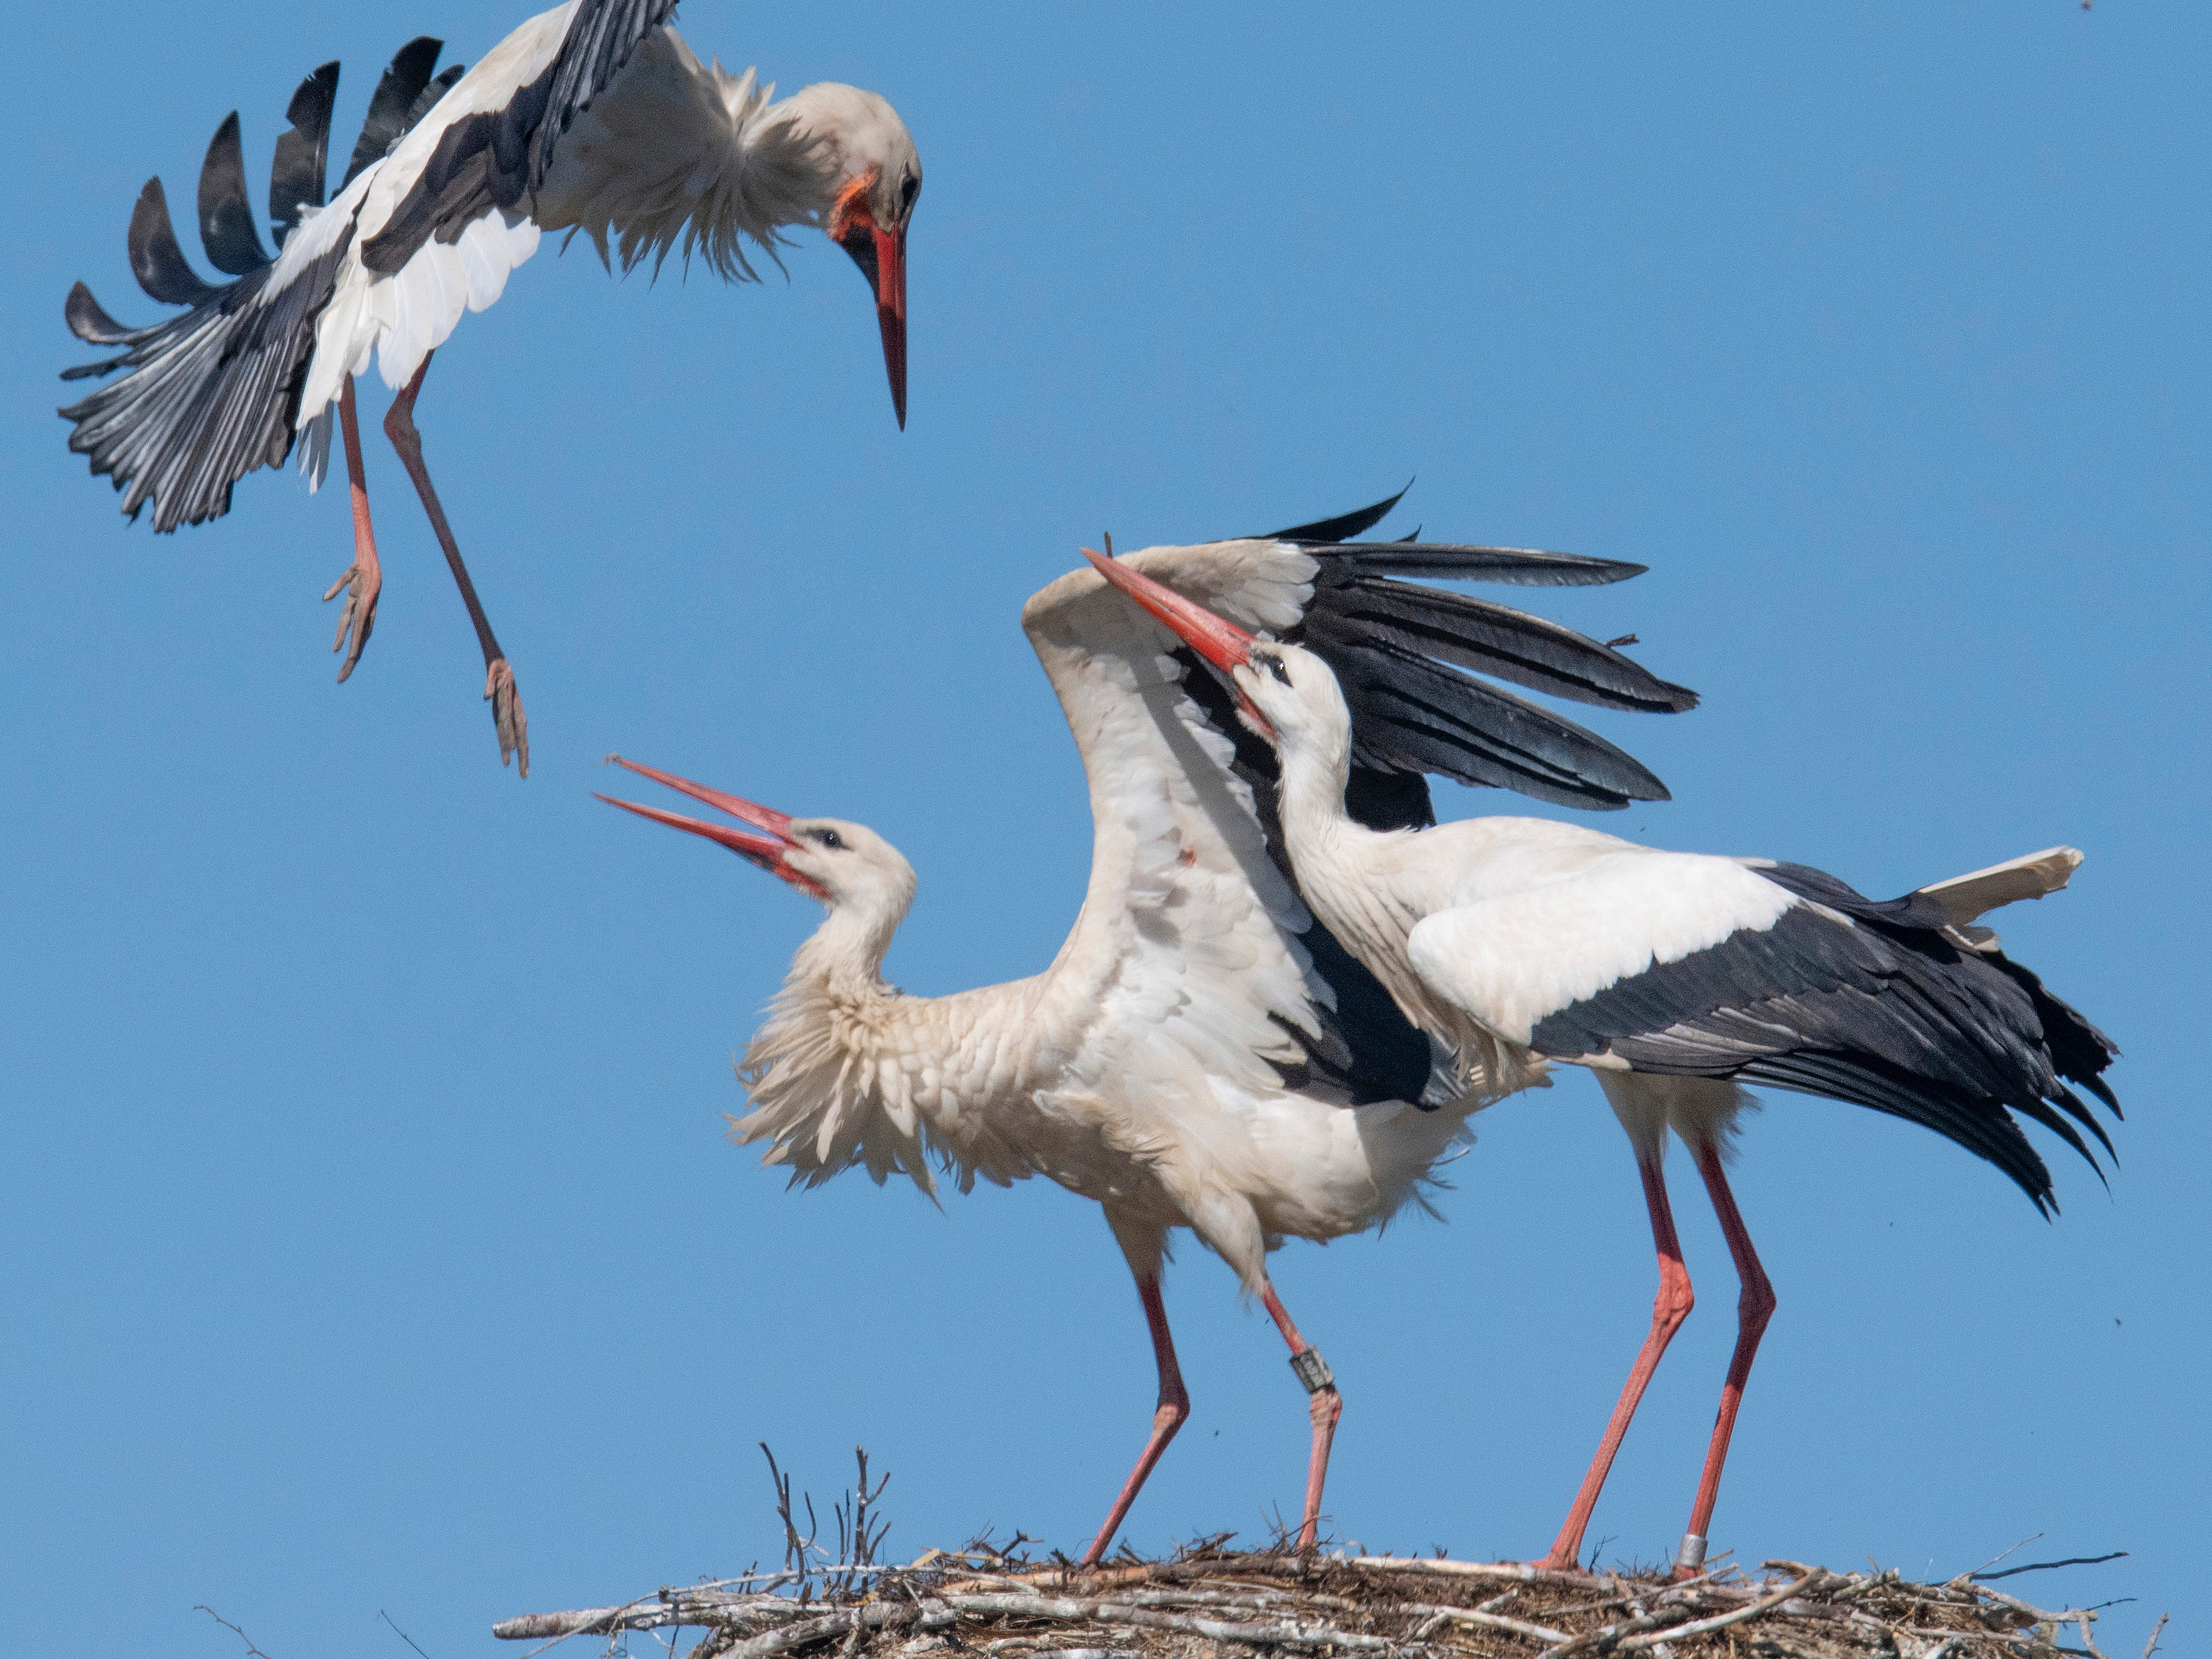 Storks defend their nest on a warm spring Friday, April 19, 2019 in Biebesheim, Germany.